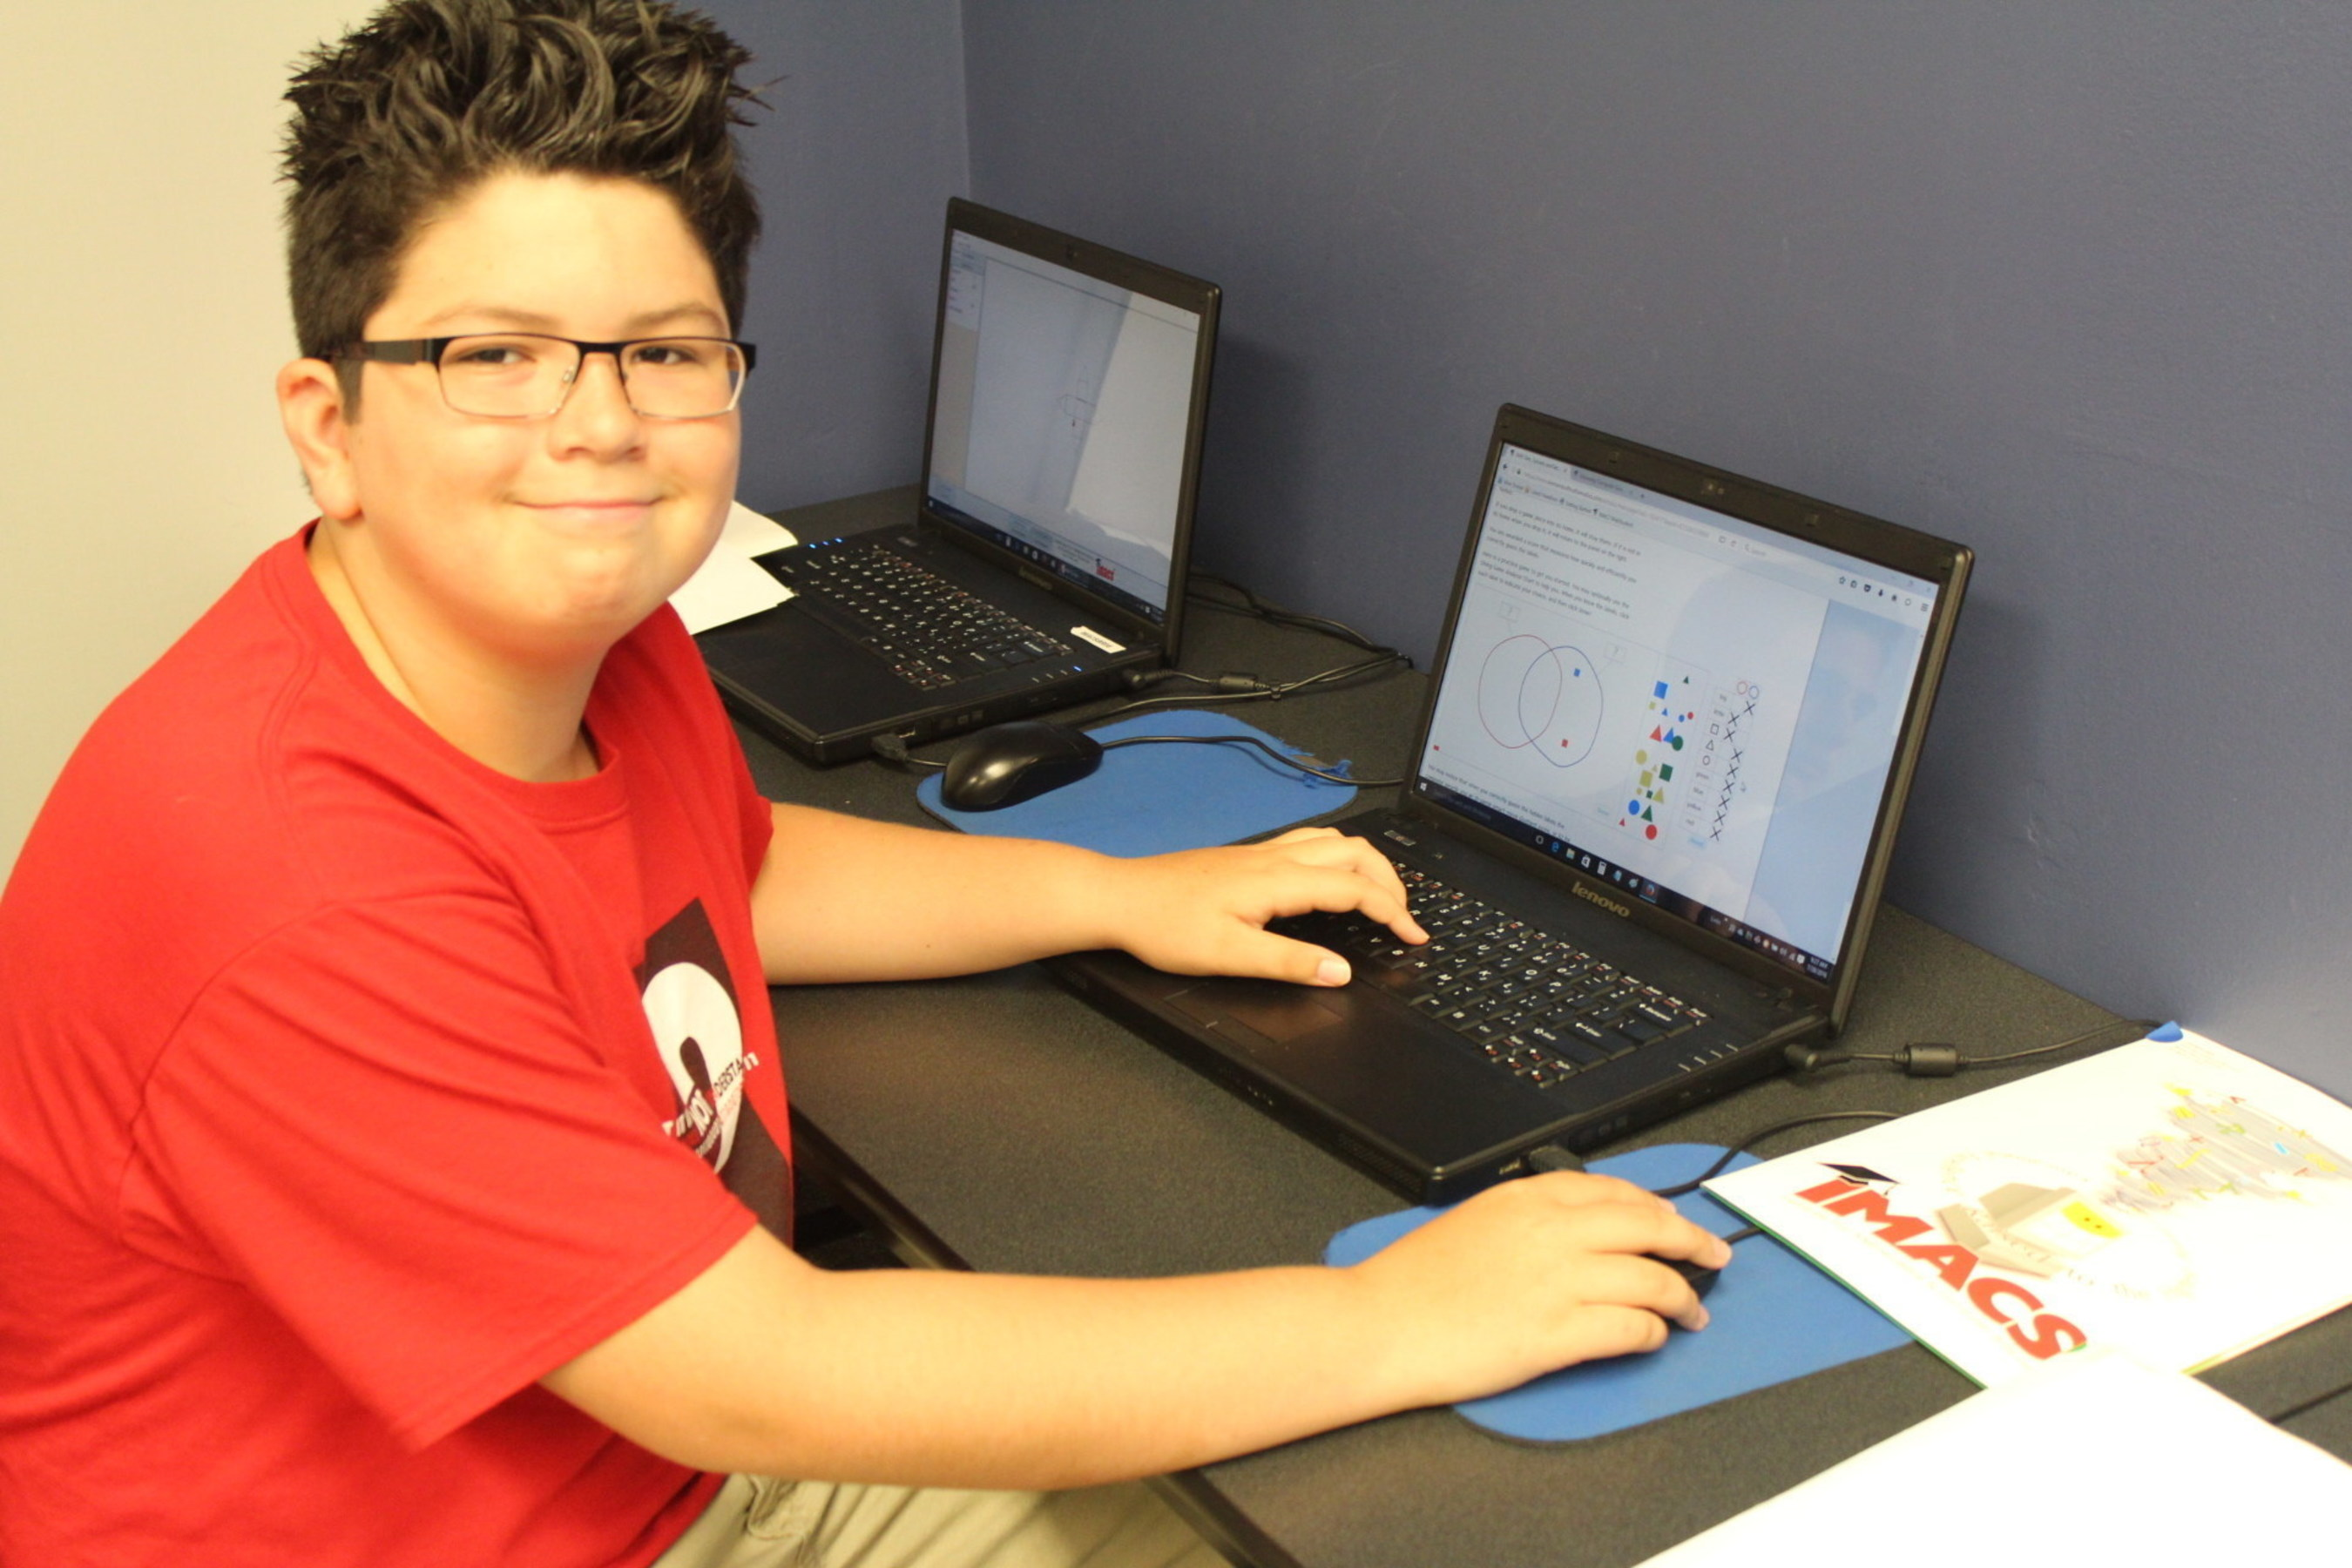 Corbin Diaz, a rising seventh grader in the BCPS/EMF program, is excited about learning advanced mathematics.